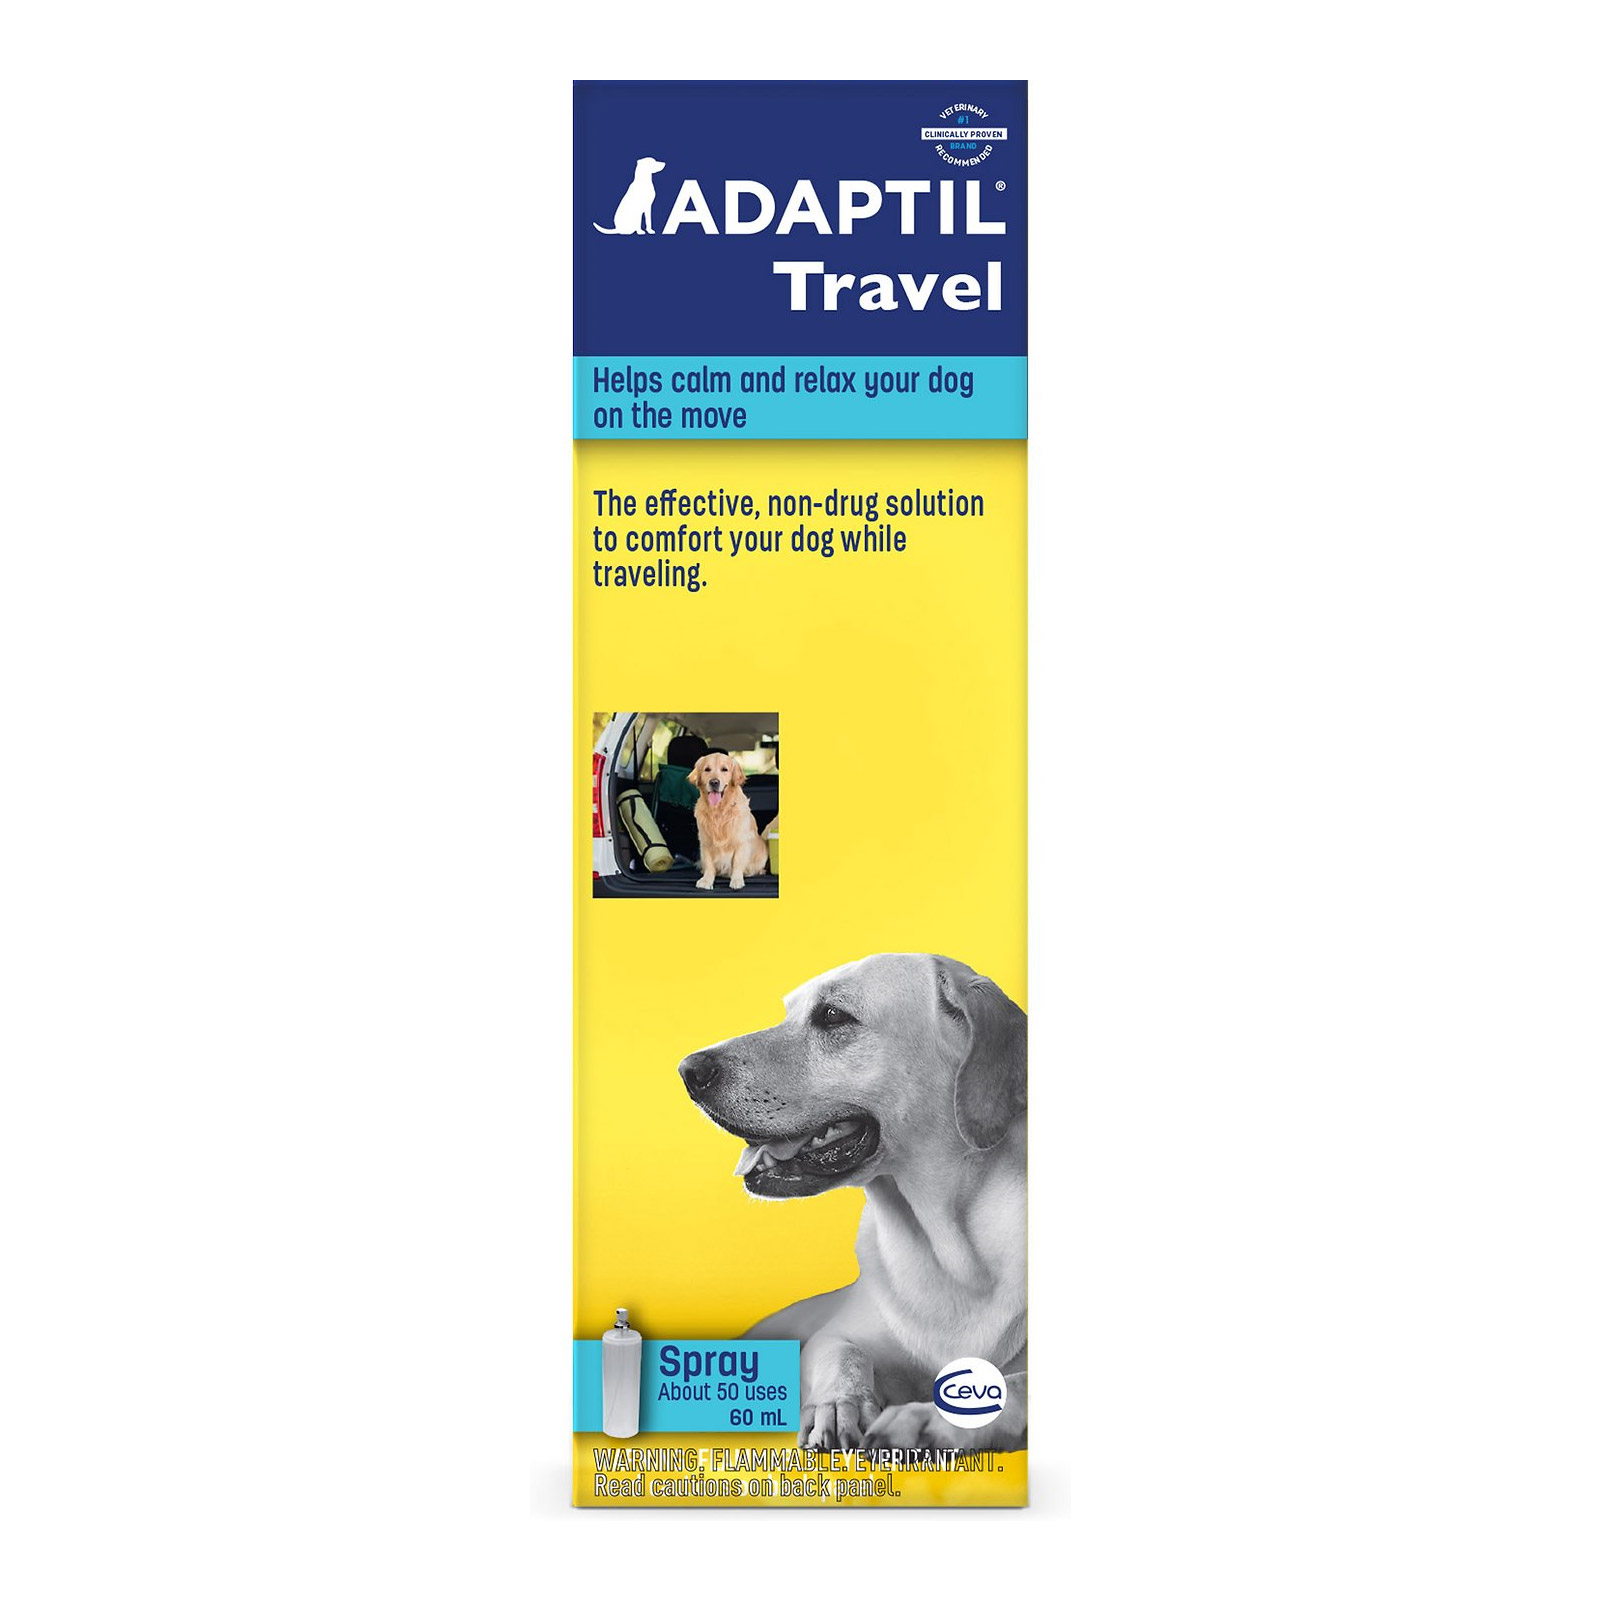 DAP Spray for Dogs